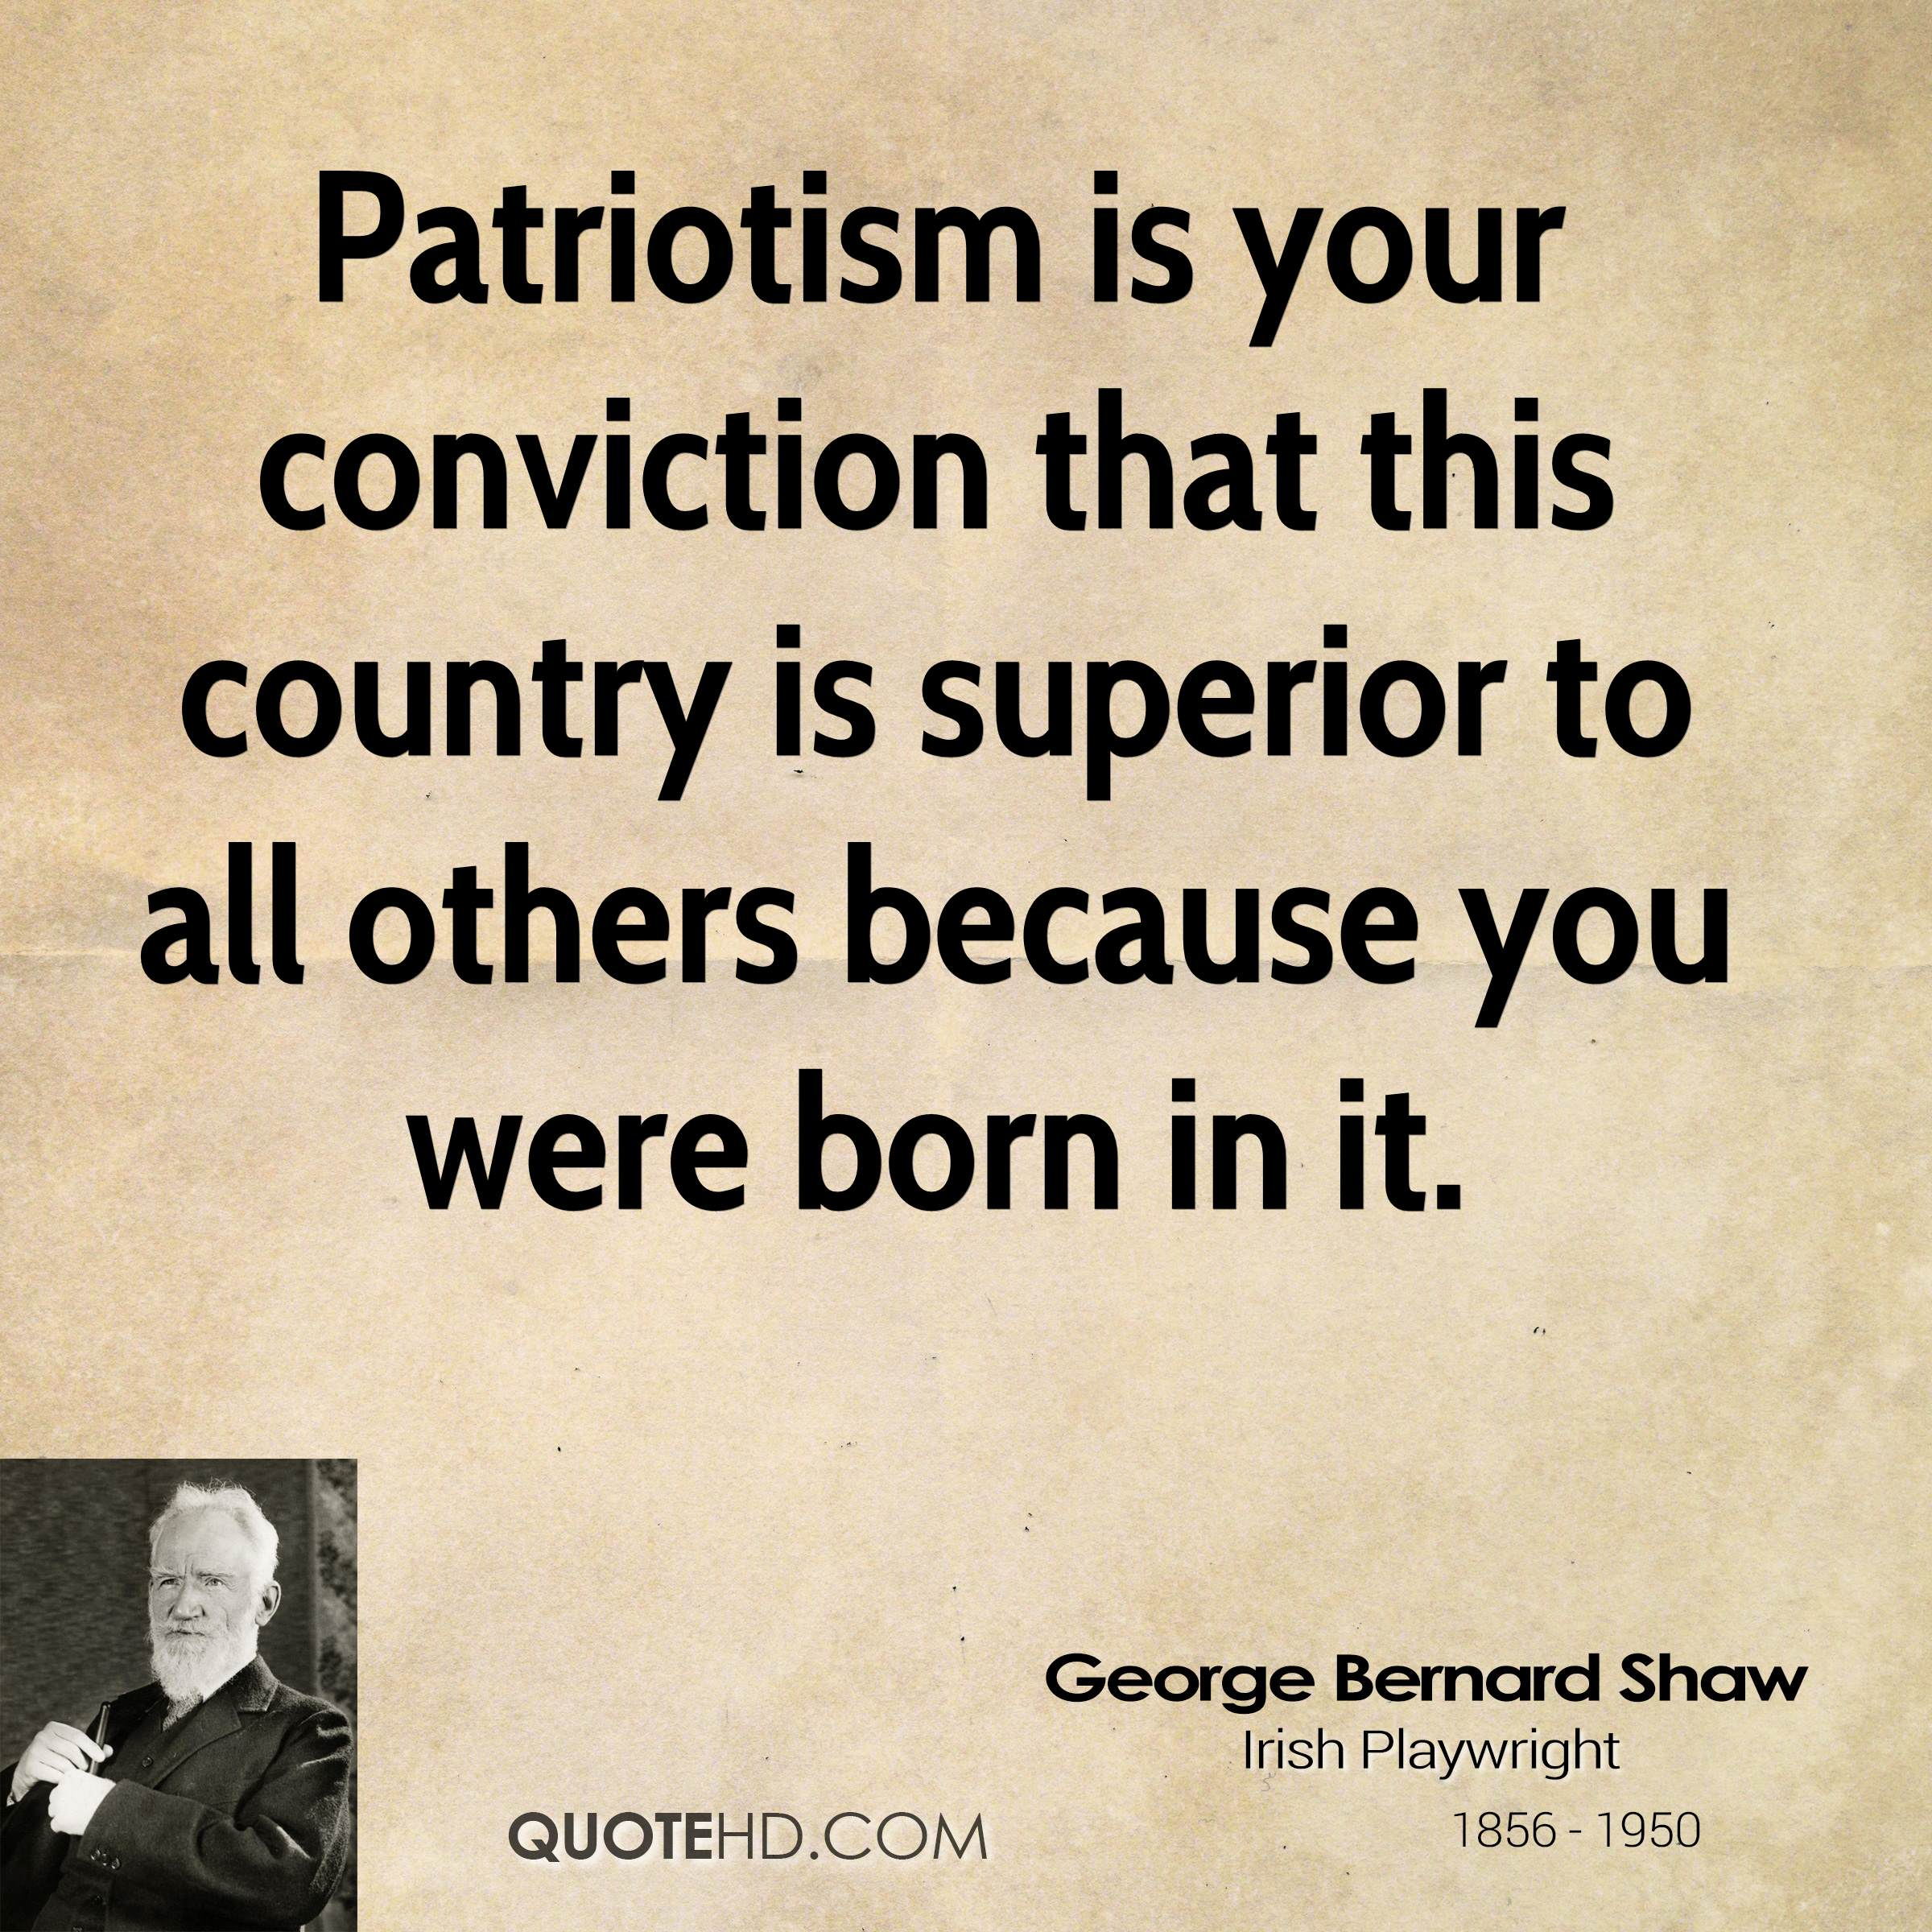 school essays on patriotism American patriotism essayspatriotism in america is the love for or devotion to america patriotism represents people who love this country and support the country.